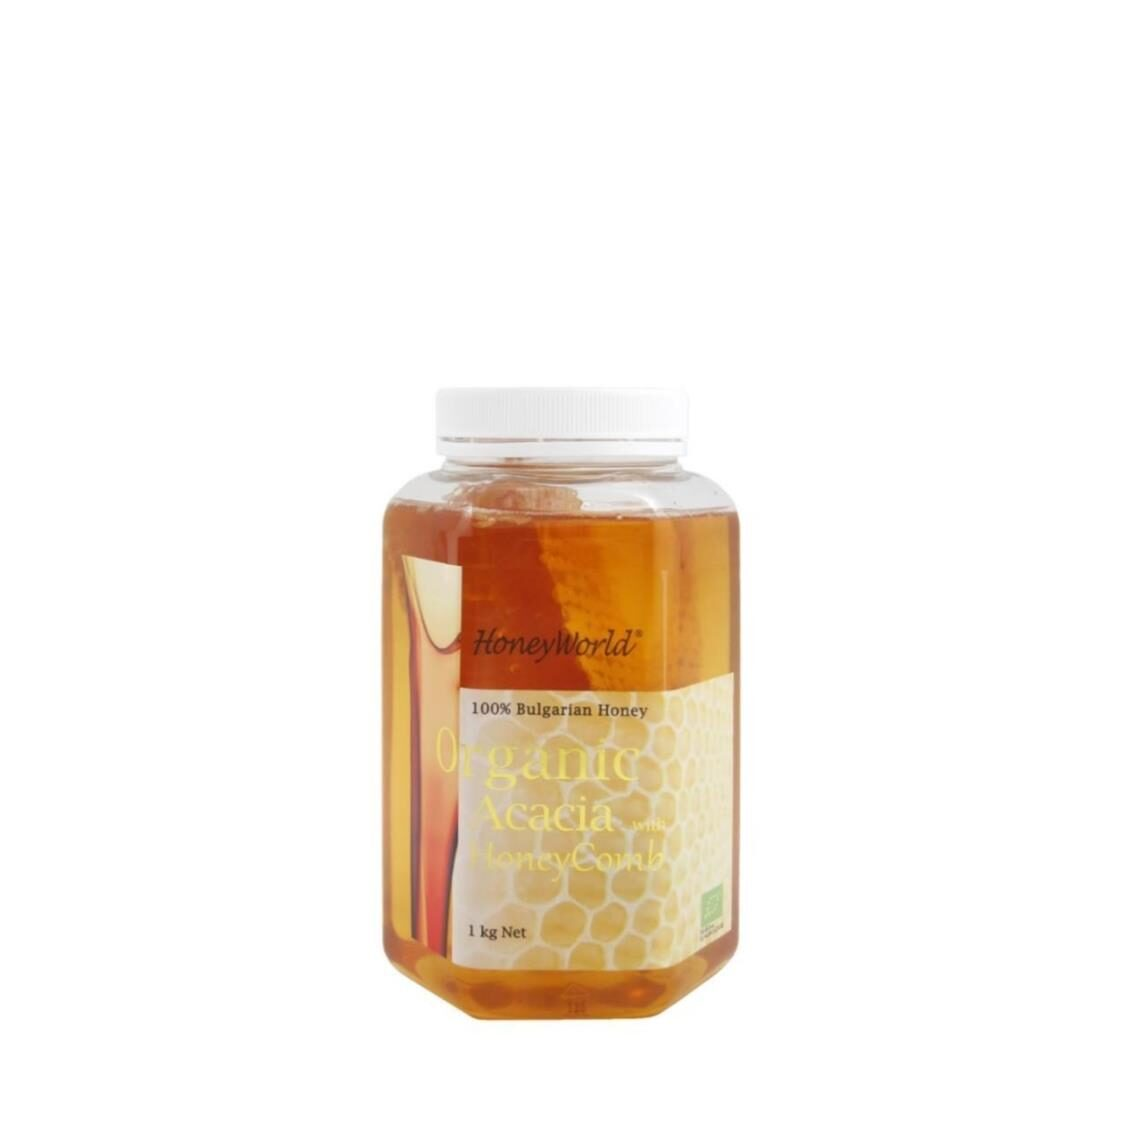 Bulgarian Honeycomb in Organic Acacia Honey 1kg